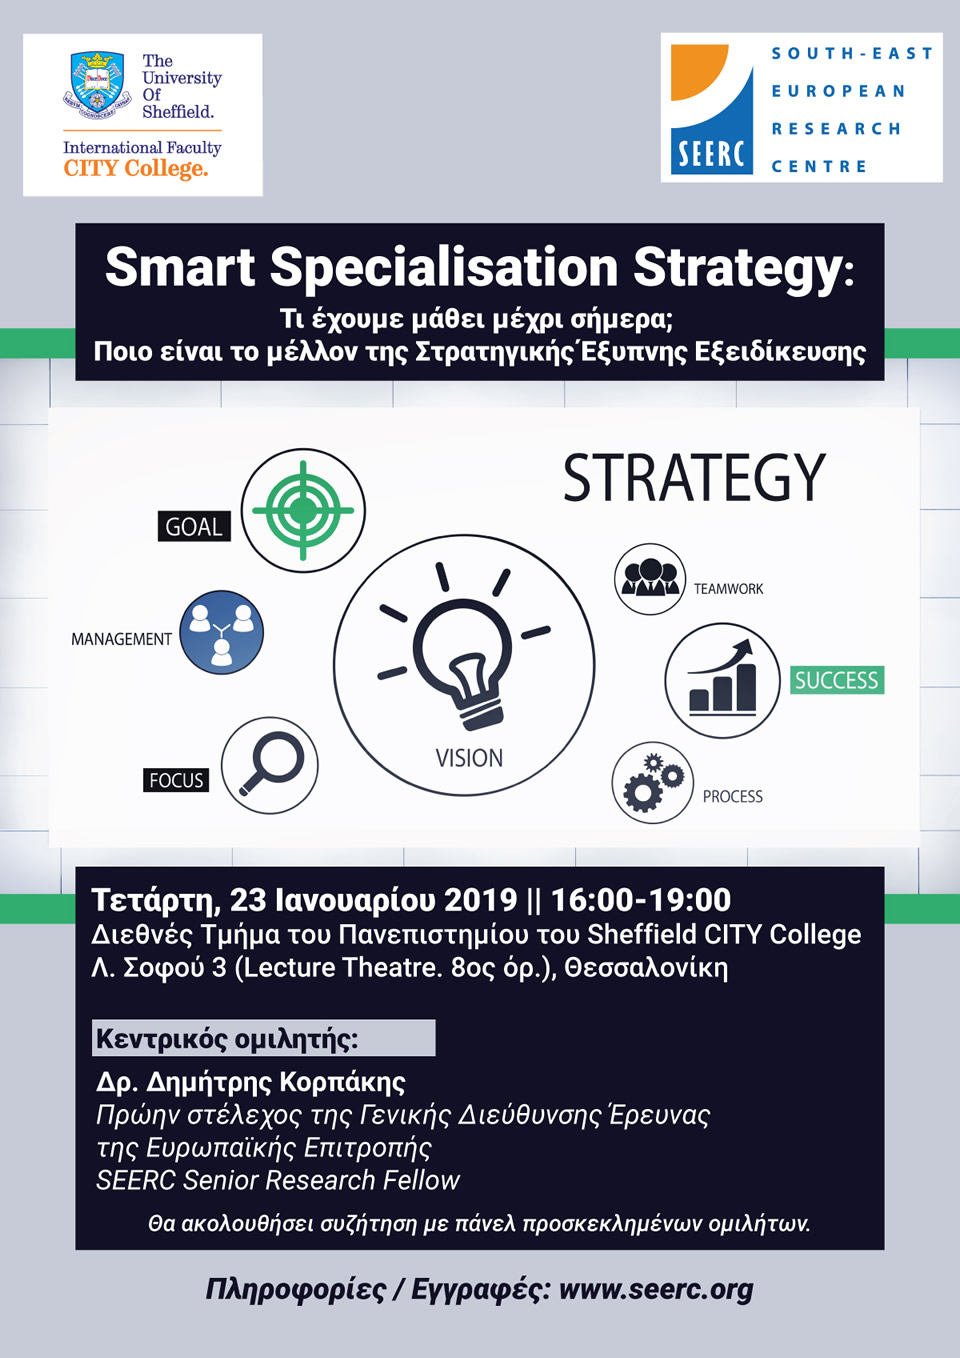 Smart Specialisation Strategy event by SEERC